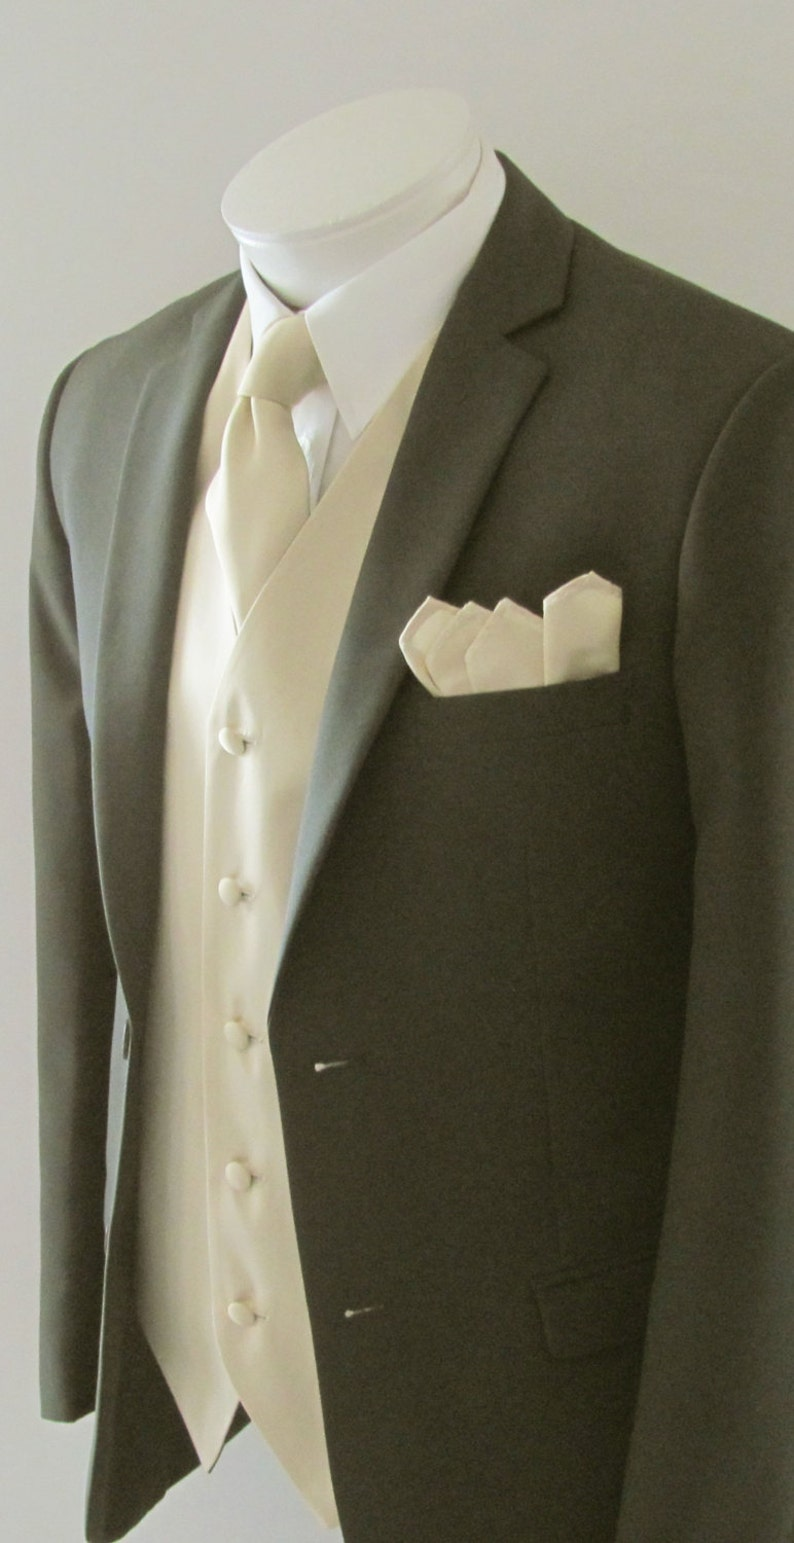 Mens Vest Champaigne Tan  Smooth Satin And Material  Covered Buttons Mans Vest Comes With Matching Tie And Pocket Square